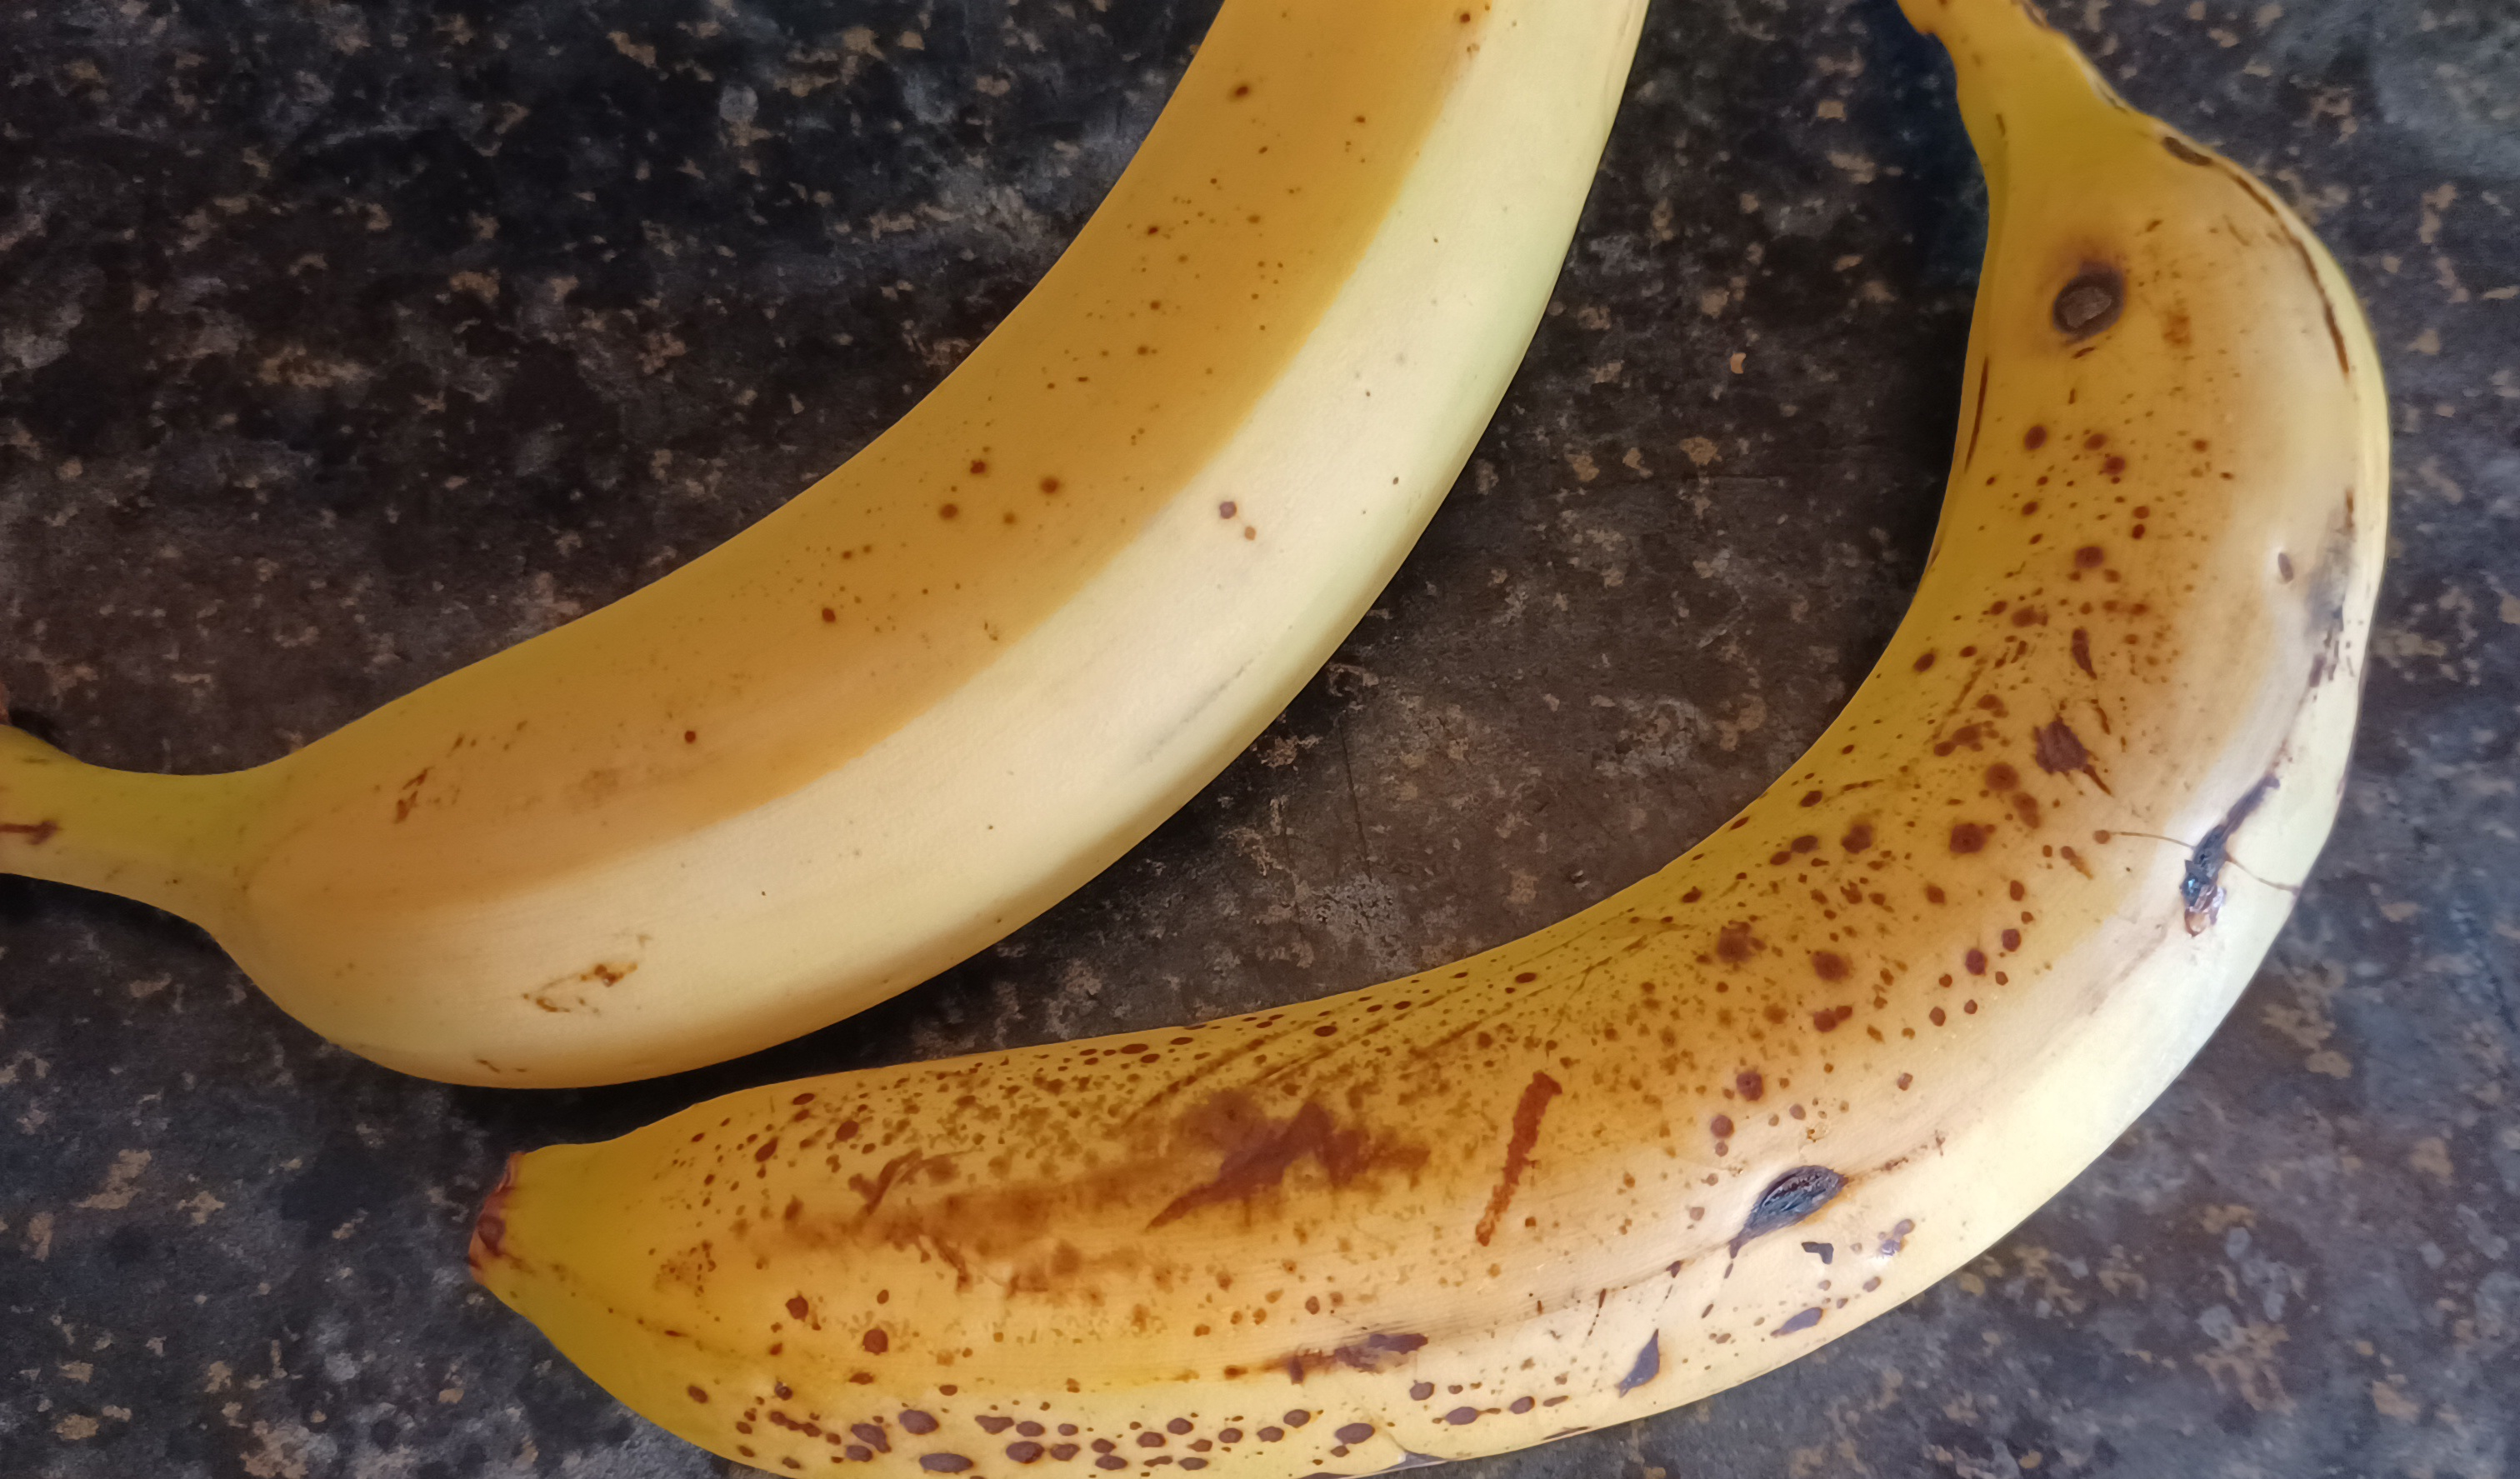 Either of these bananas is suitable for banana ice cream but the bottom one is more ripe and will therefore be more sweet